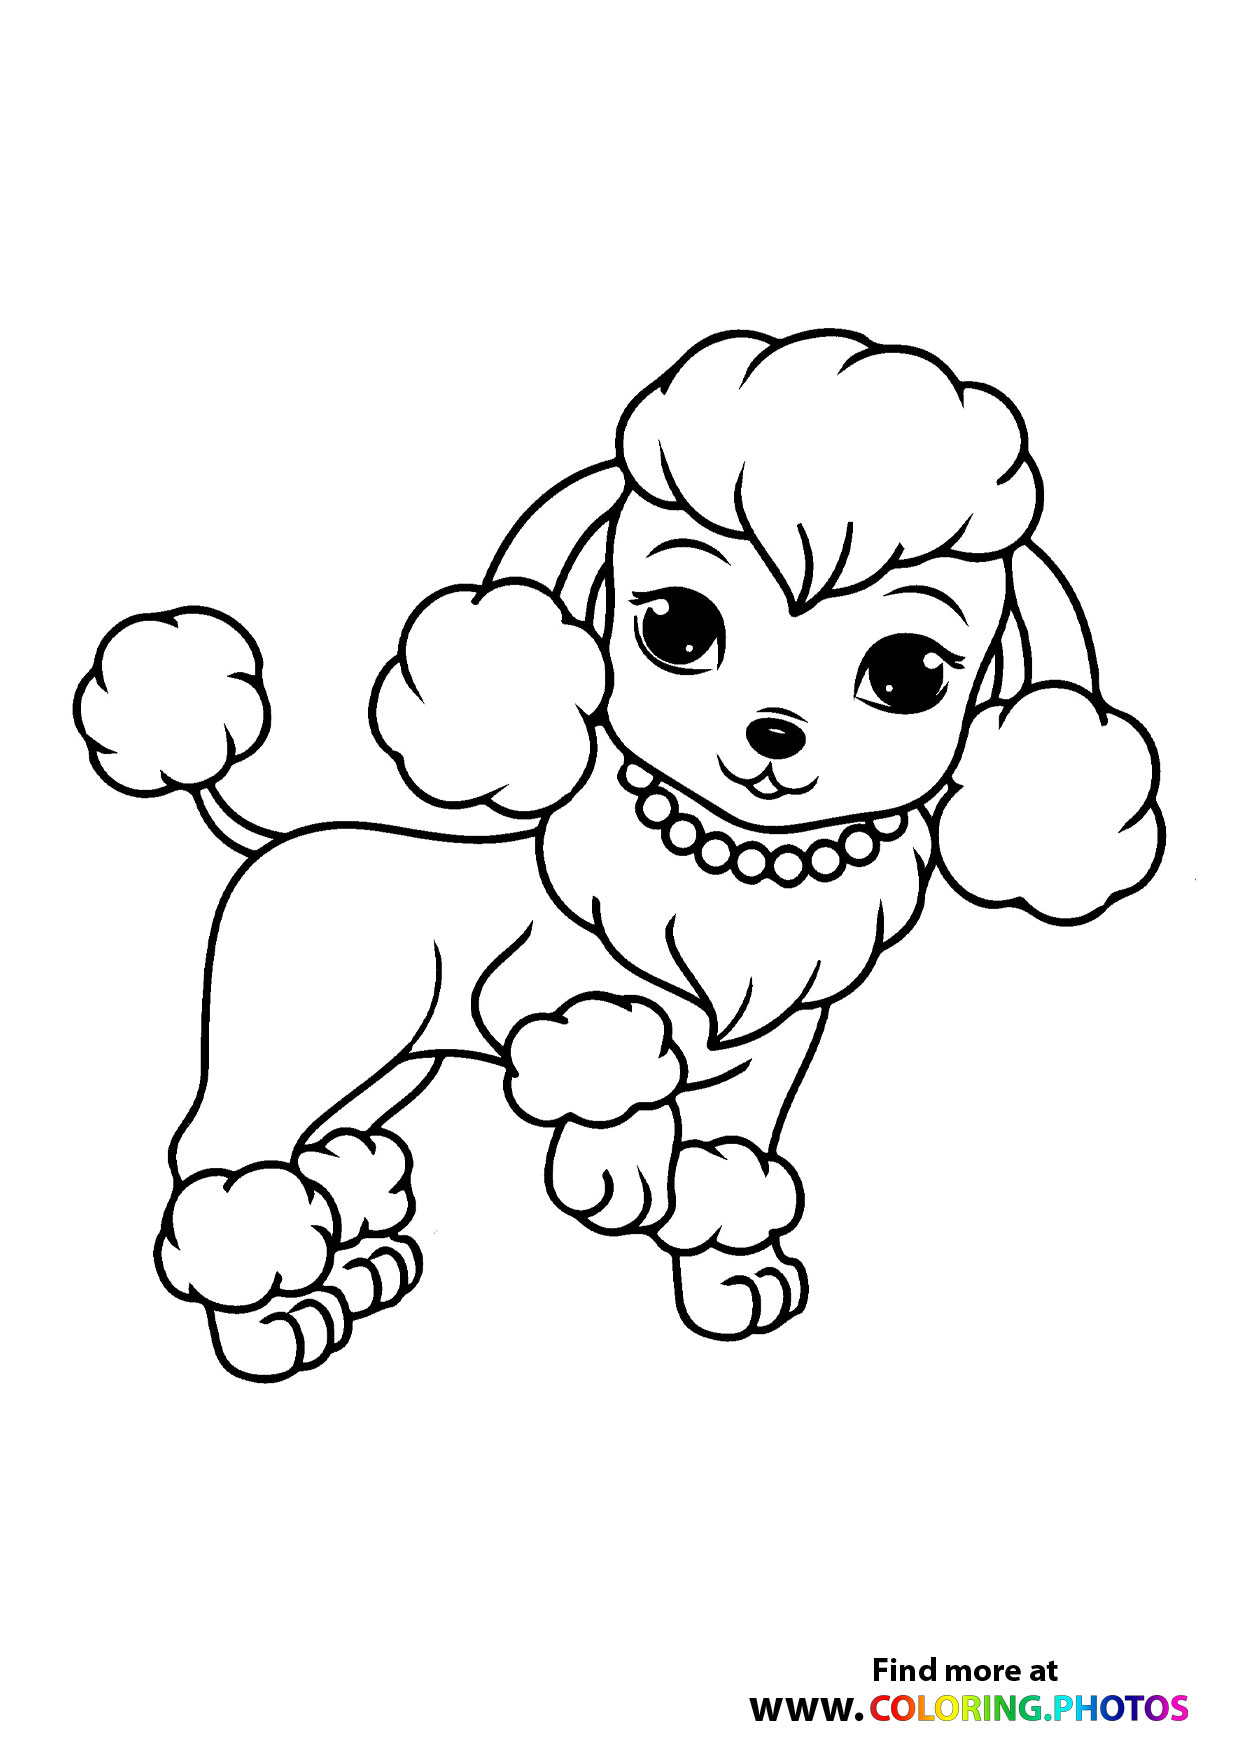 poodle dog with necklase coloring for kids cute washable chalk paint printable ants books coloring pages Poodle Coloring Page